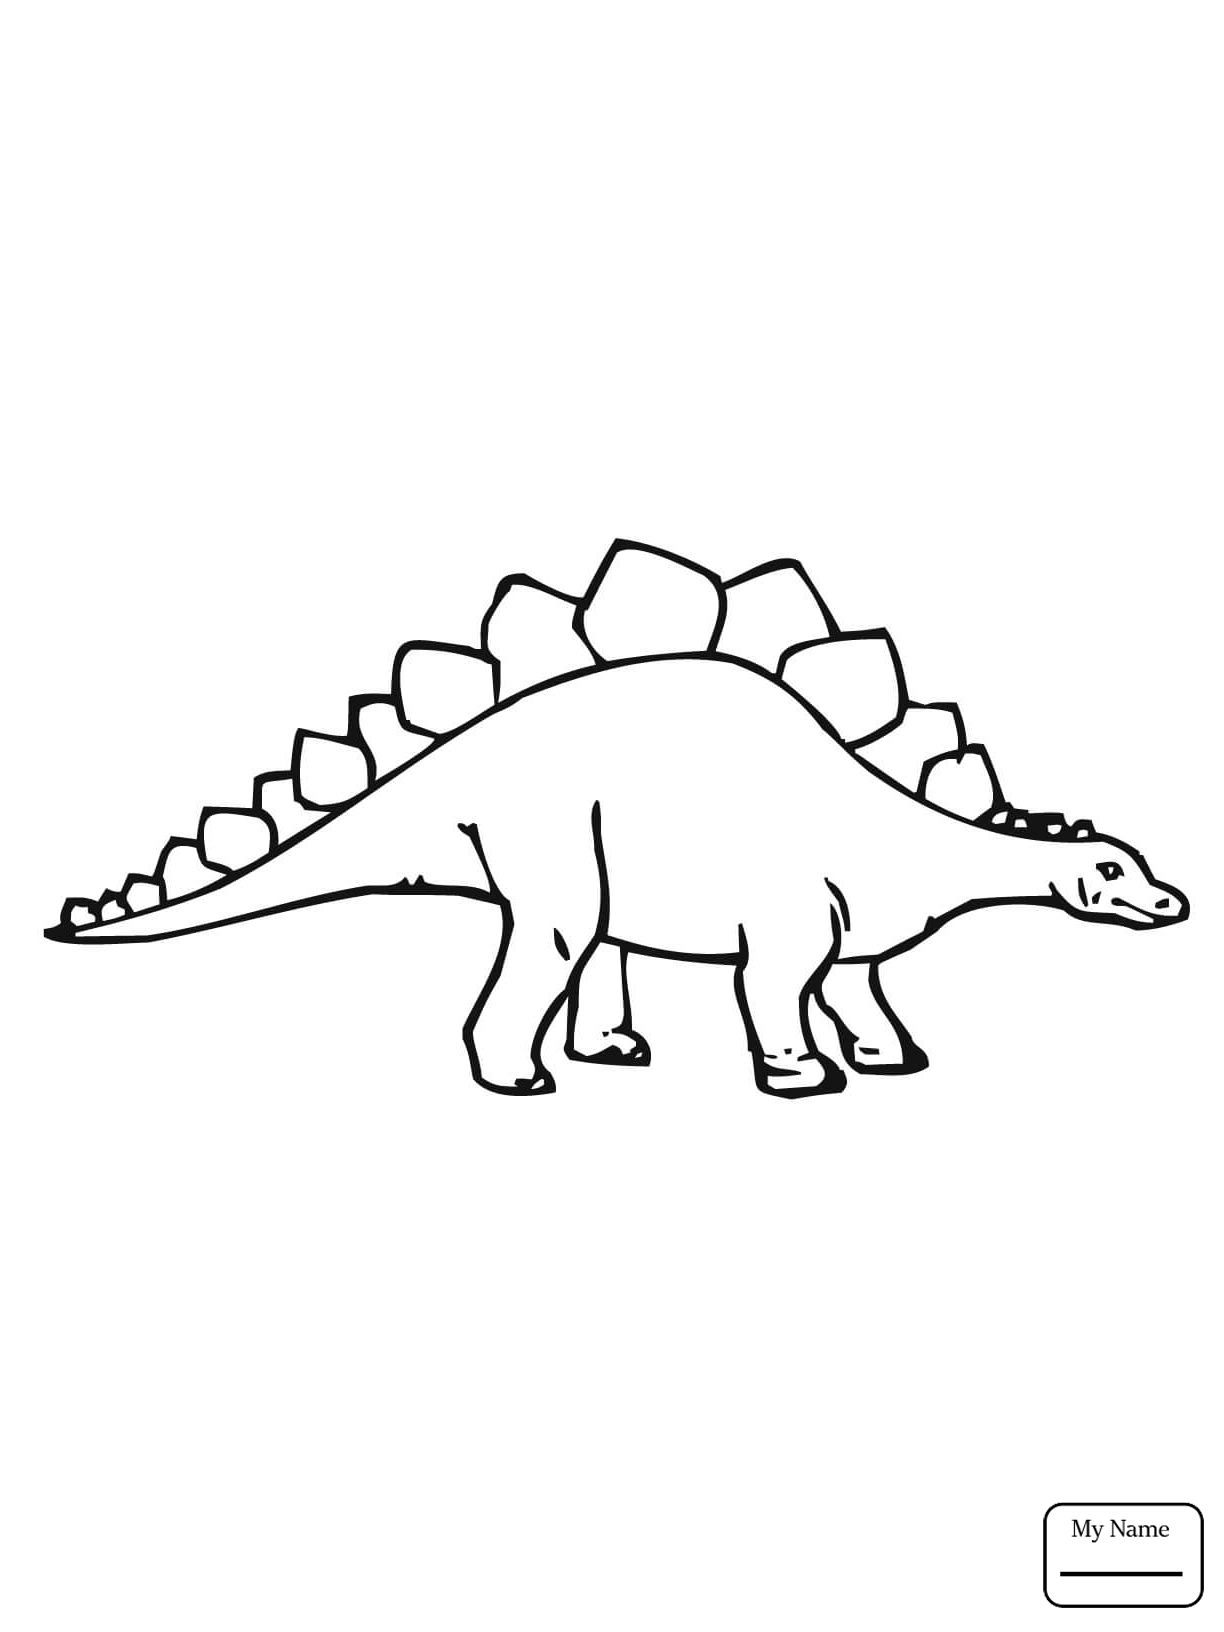 stegosaurus pictures to color stegosaurus free realistic dinosaur coloring pages color stegosaurus to pictures